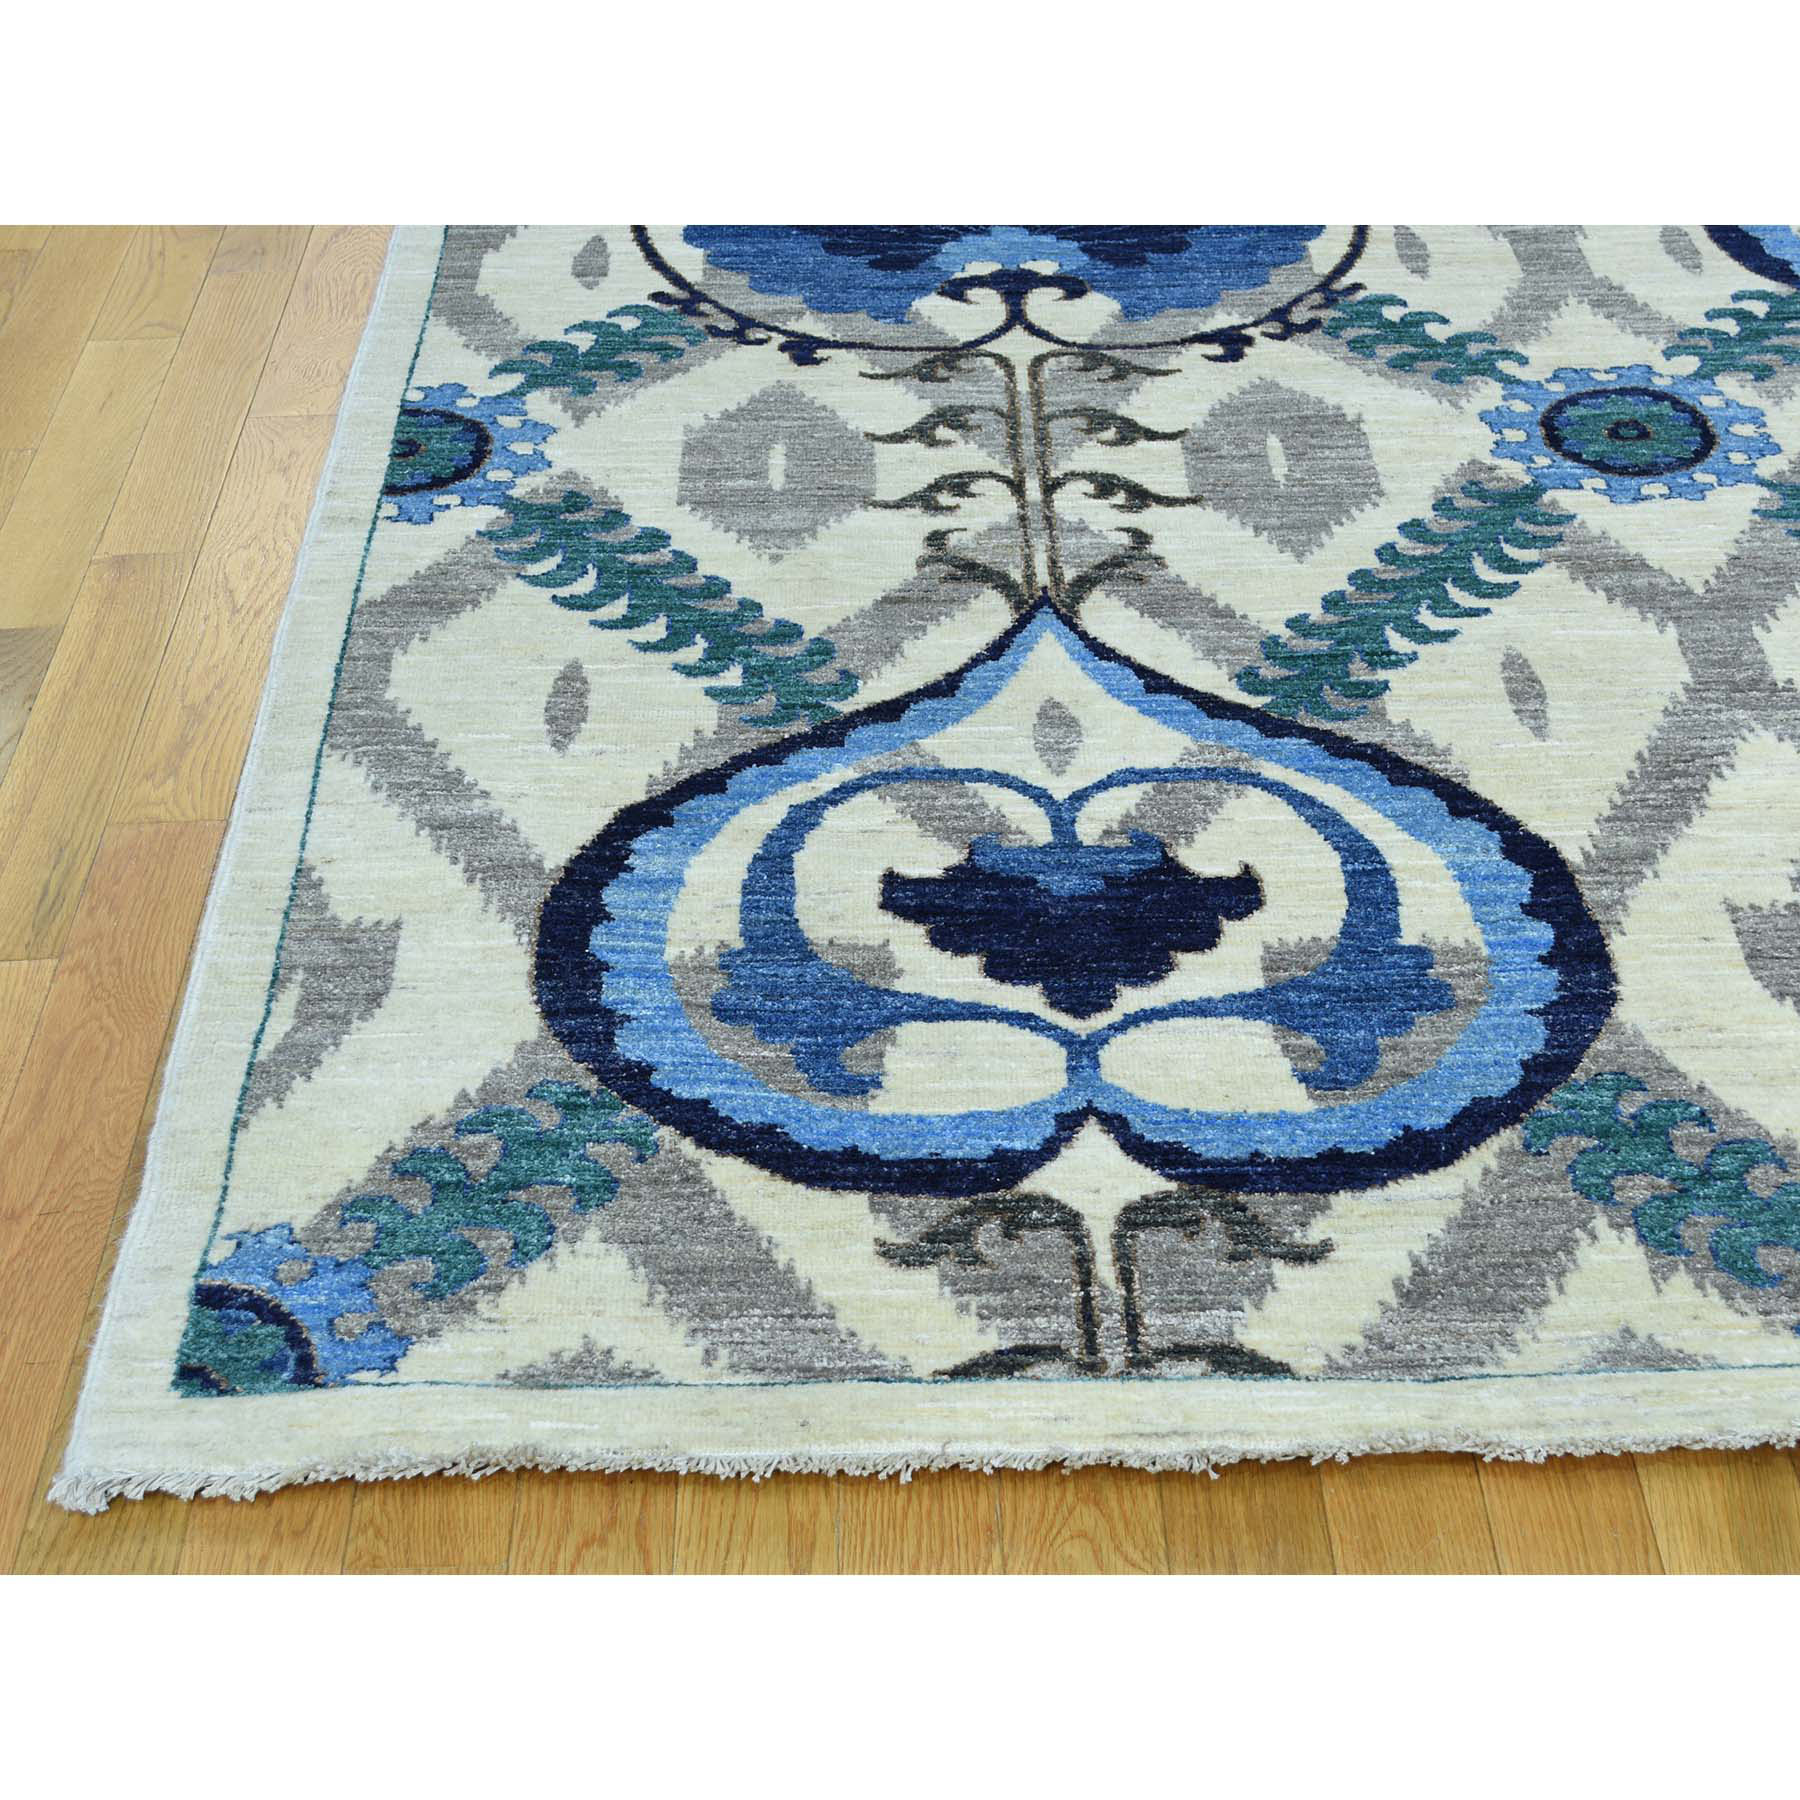 10-x13-9  Hand-Knotted Arts And Crafts Design Pure Wool Oriental Rug